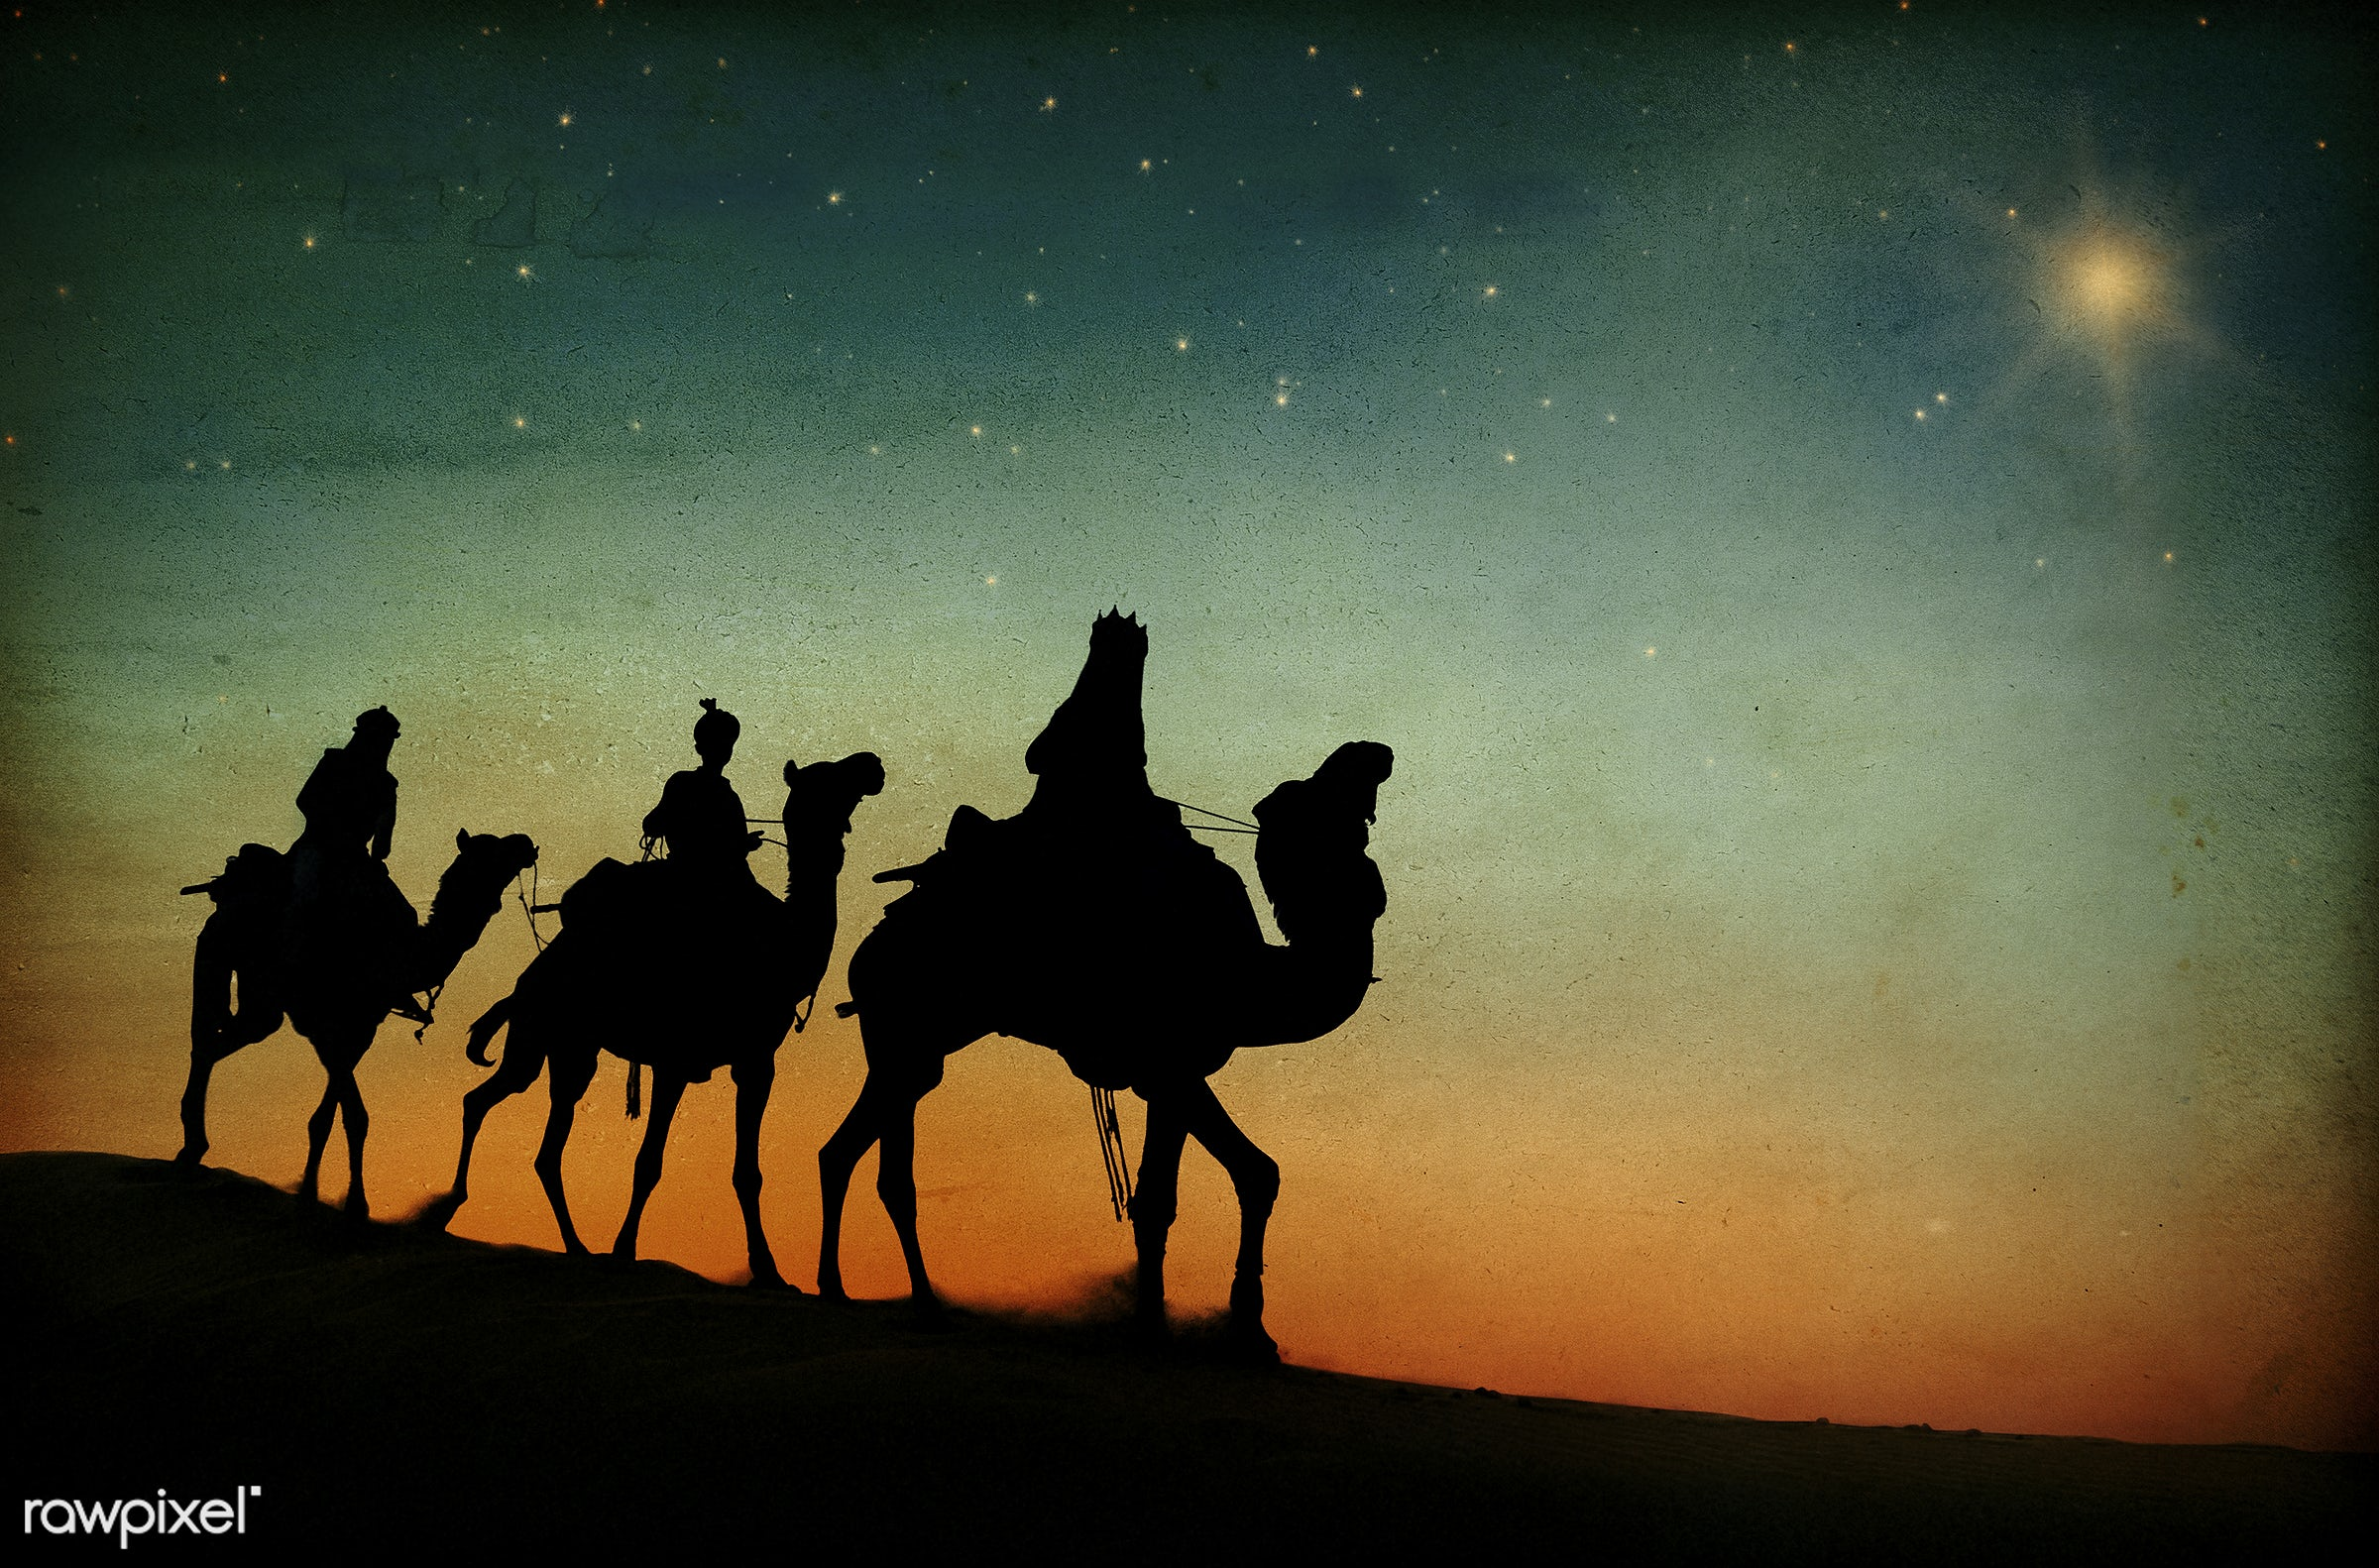 Three wise kings following the star - nativity, travel, star, dusk, desert, 3 kings, birth, camel, christmas, concepts and...